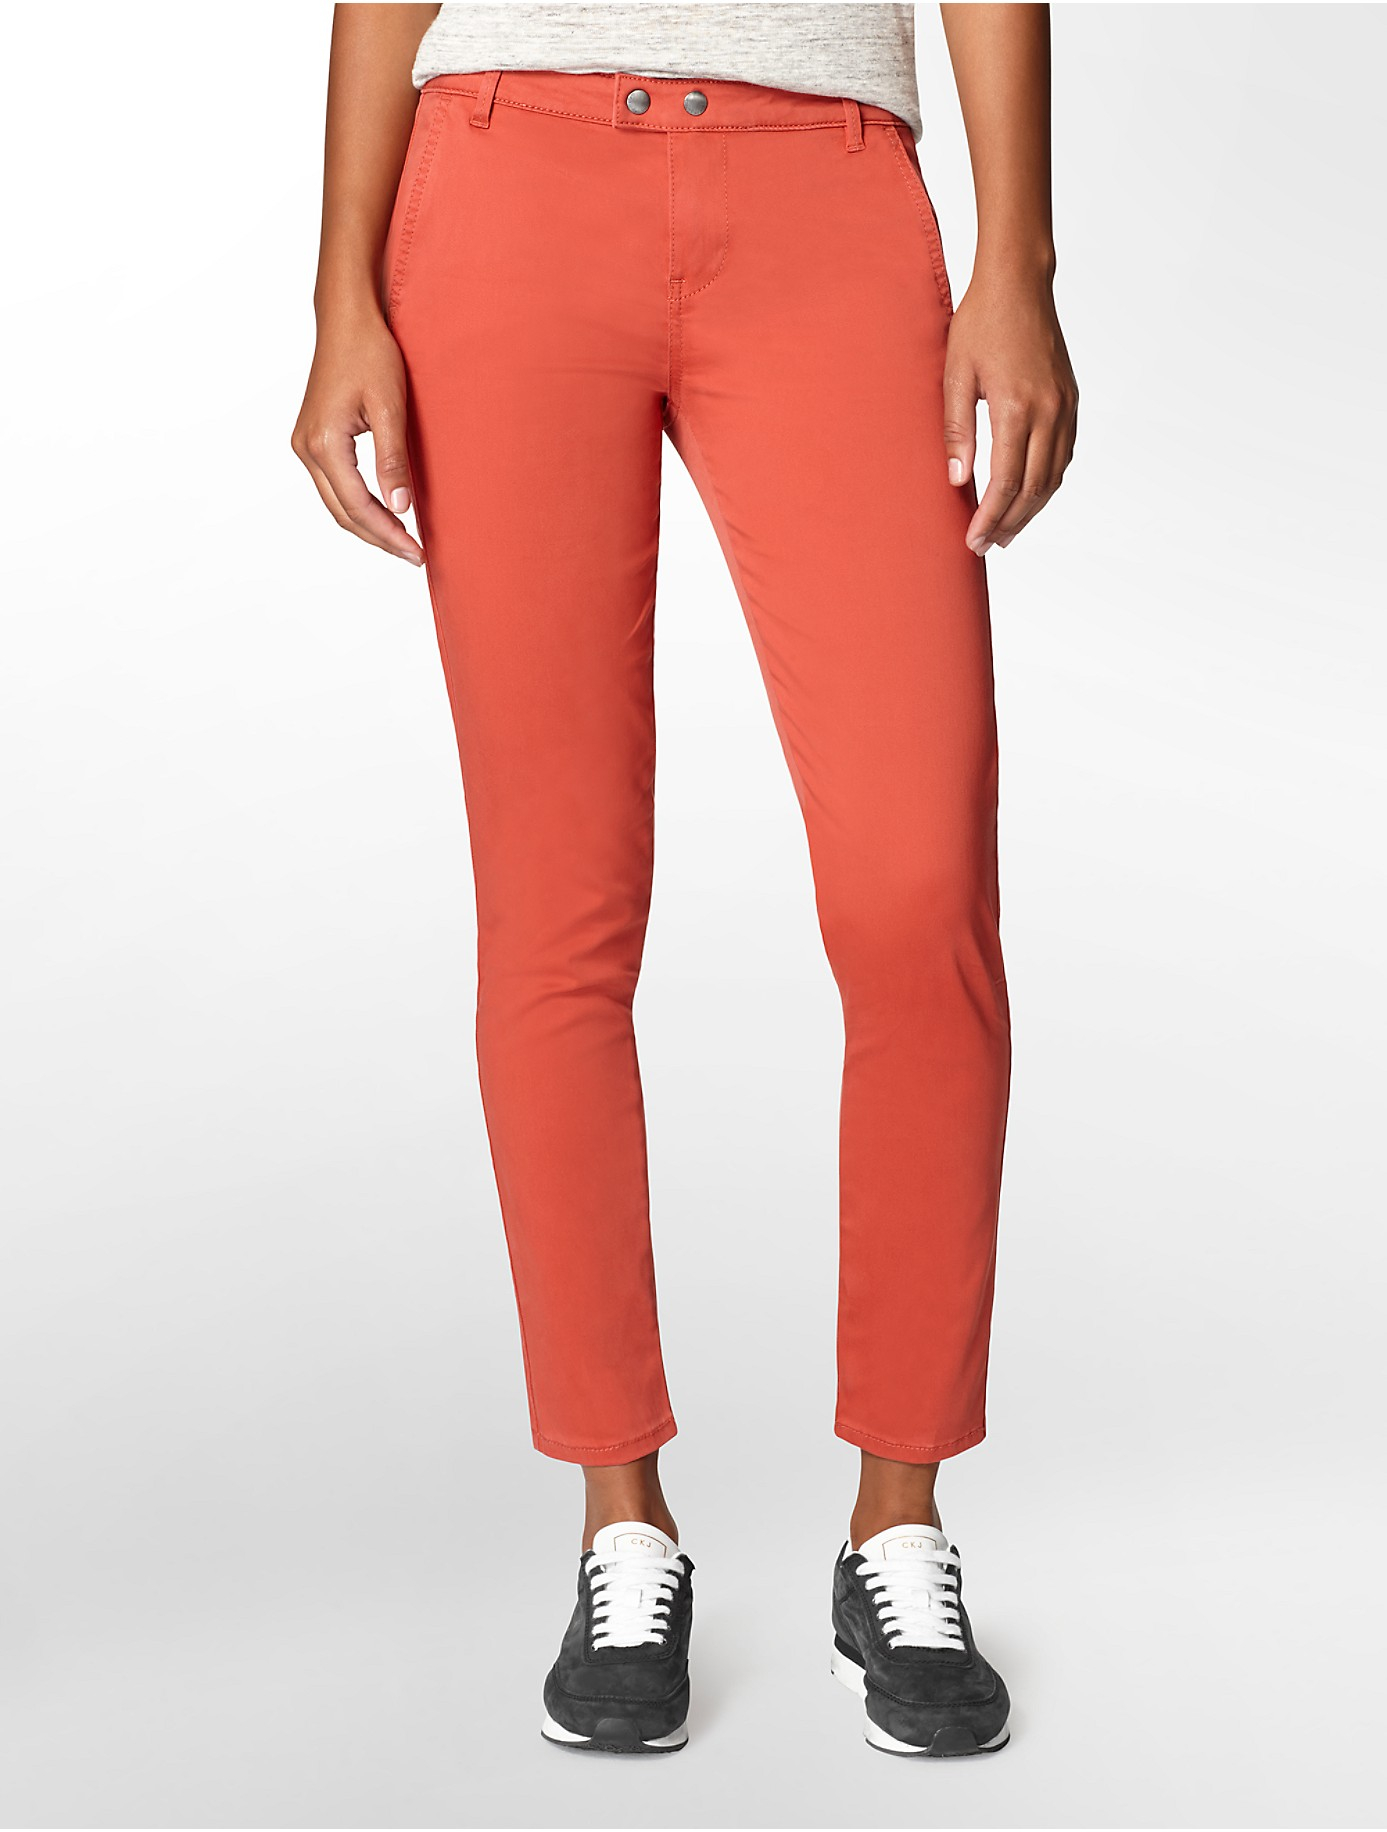 SHOPBOP - Ankle Jeans FASTEST FREE SHIPPING WORLDWIDE on Ankle Jeans & FREE EASY RETURNS.